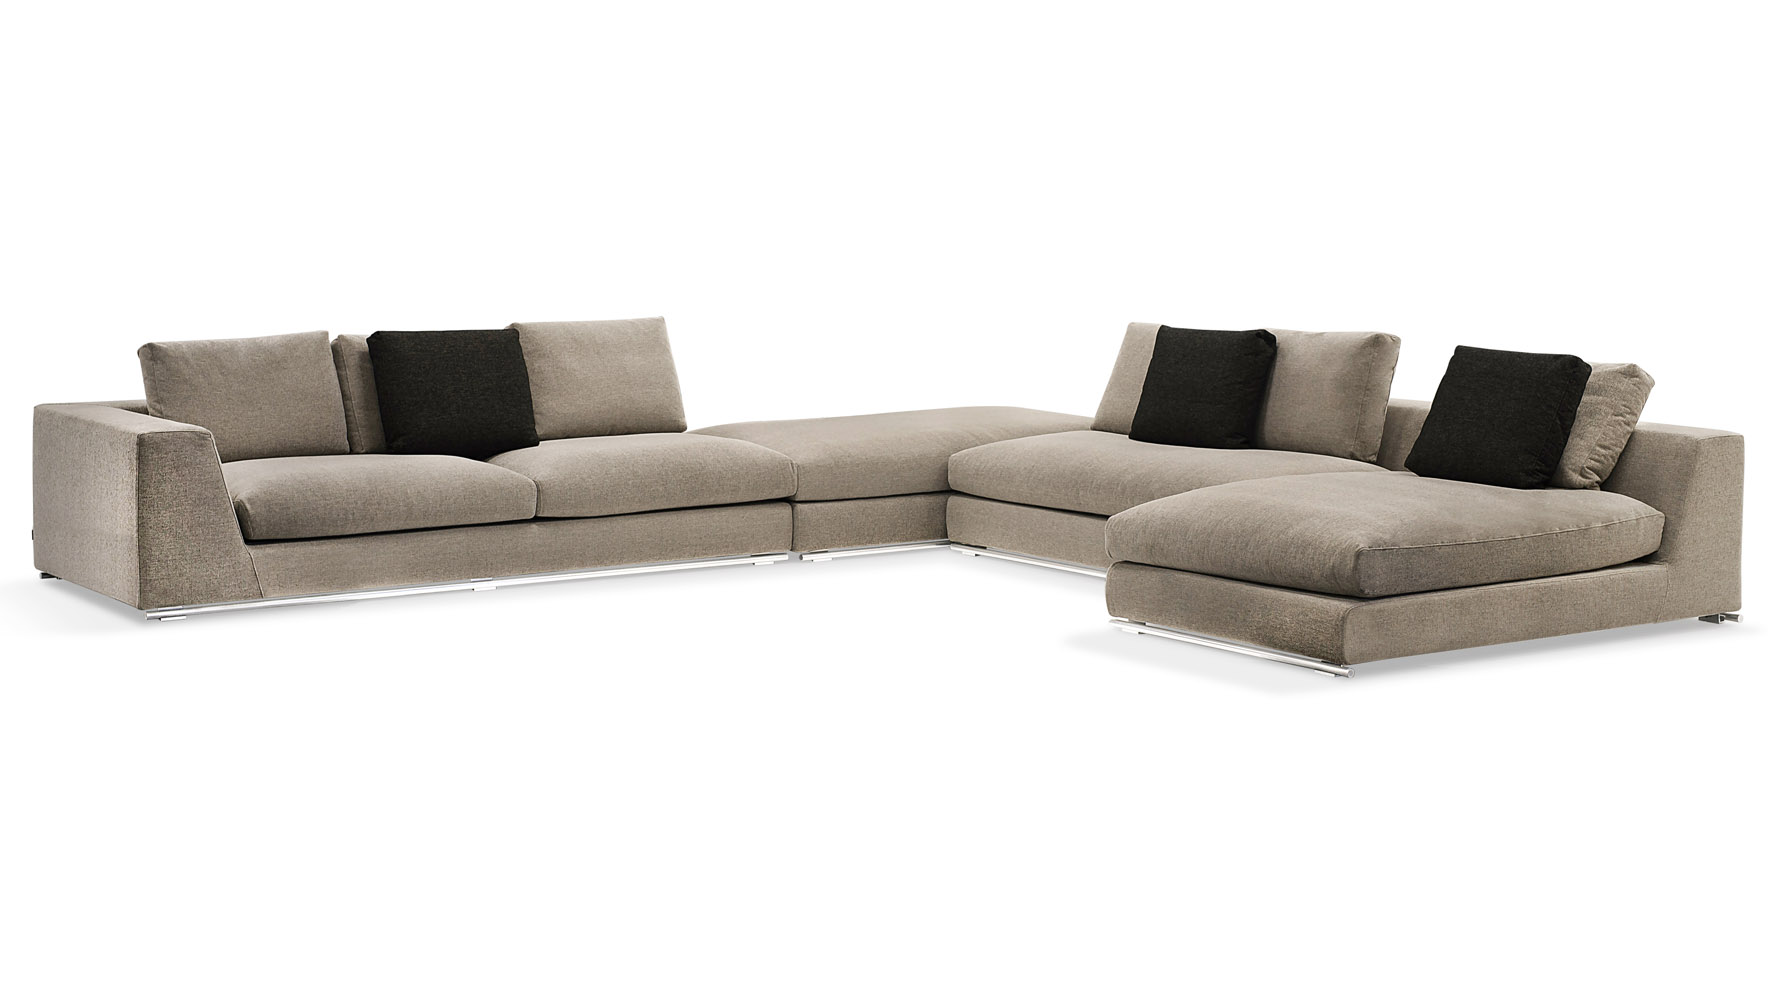 Comodo Sectional Sofa With Ottoman Grey Zuri Furniture